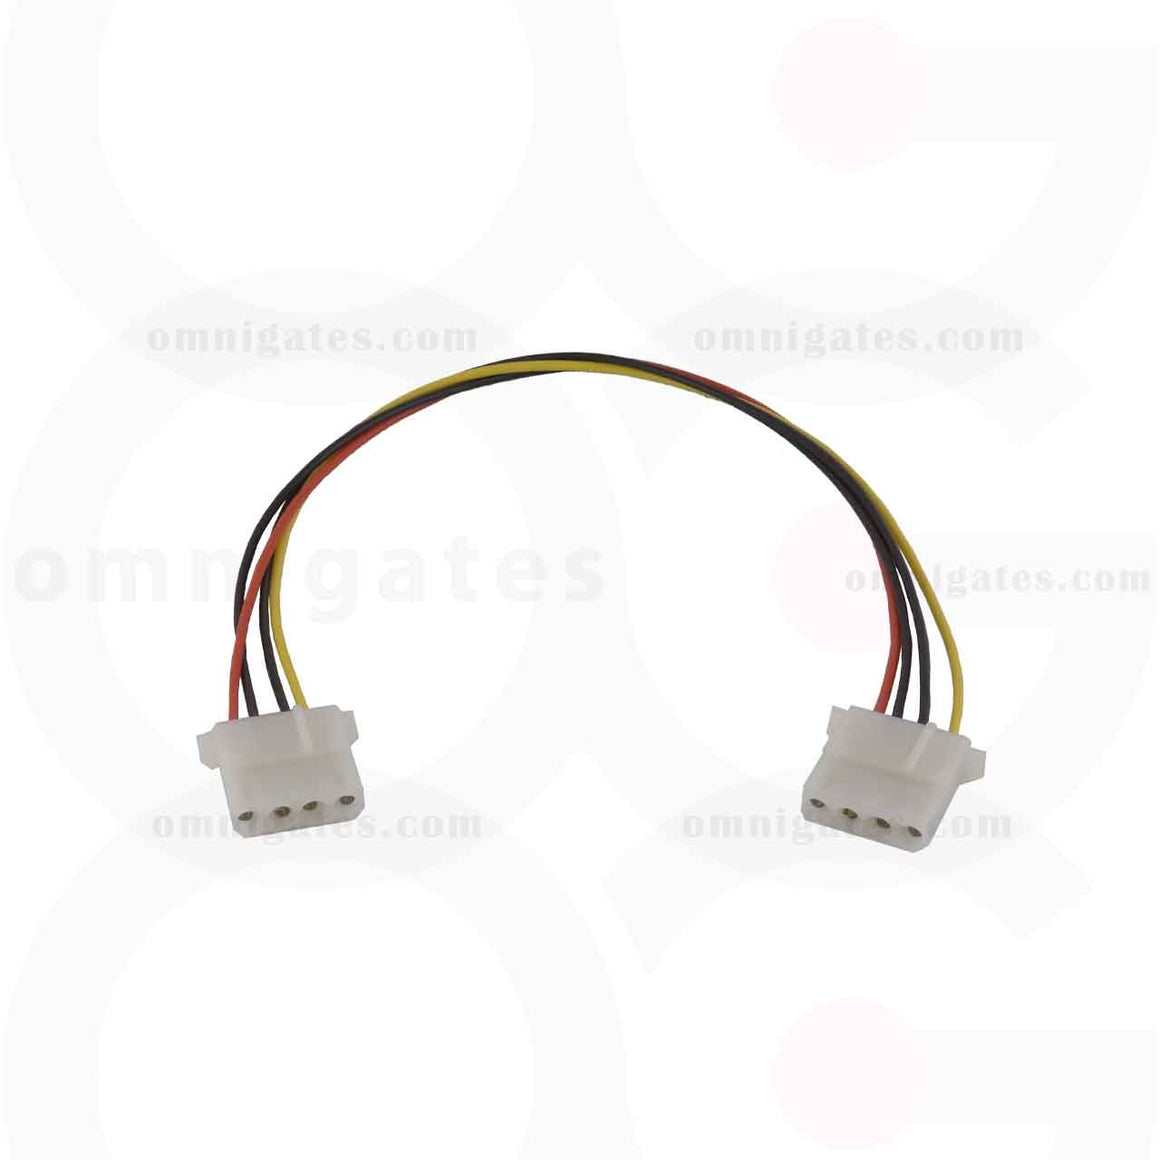 5.25 Female to 5.25 Female, Internal DC Adaptor Cable, 12 inches